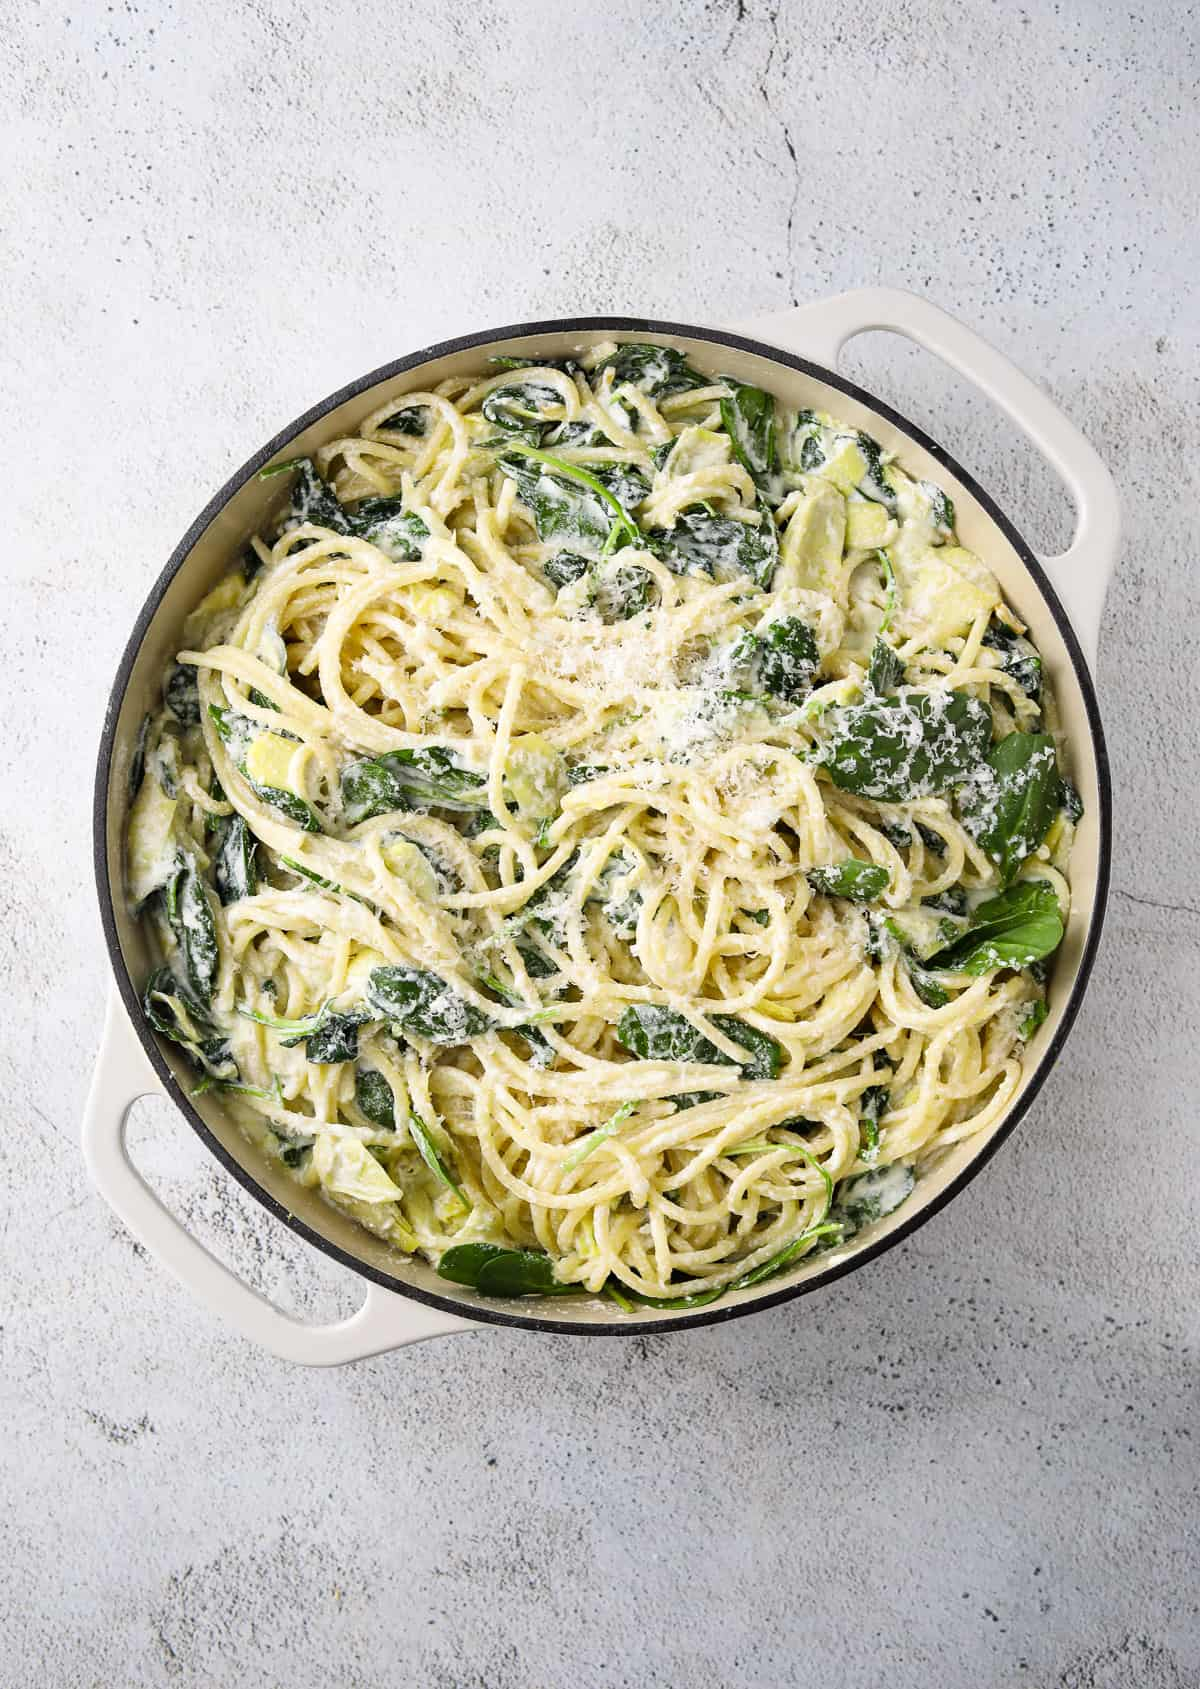 a large pot filled with lemon ricotta pasta topped with grated parmesan cheese and lemon zest